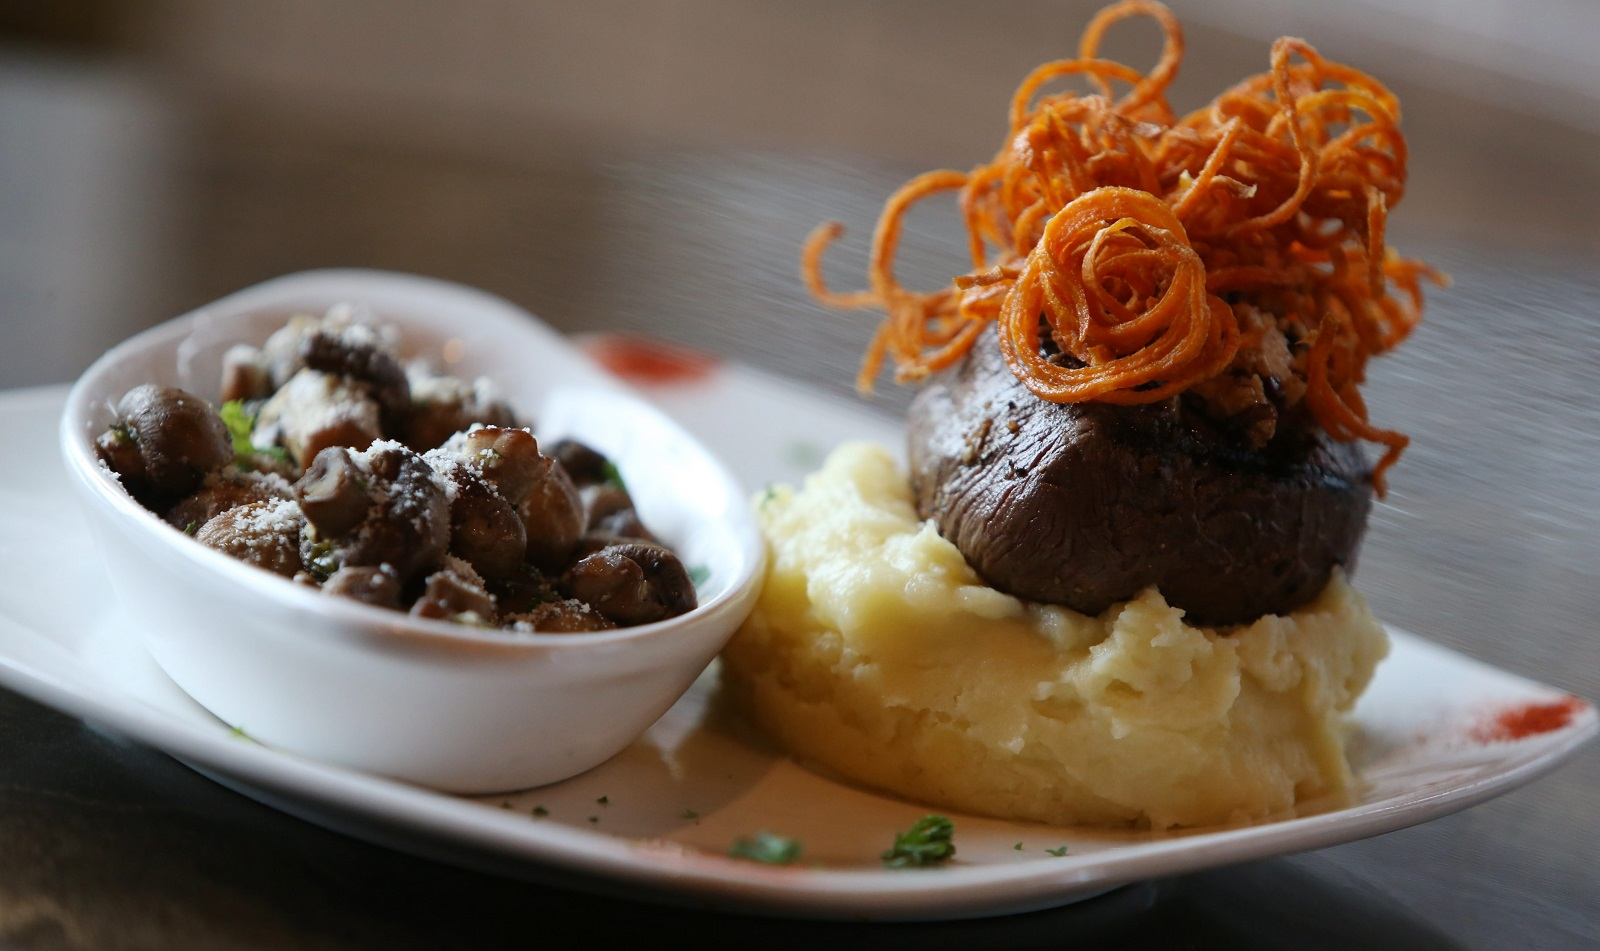 The 8-ounce grilled center-cut filet mignon is topped with maple bourbon-bacon compound butter and a crispy sweet potato nest, presented over Yukon Gold whipped potatoes, saved with a side of garlic, white wine and butter-sautéed baby mushrooms. (Sharon Cantillon/Buffalo News)